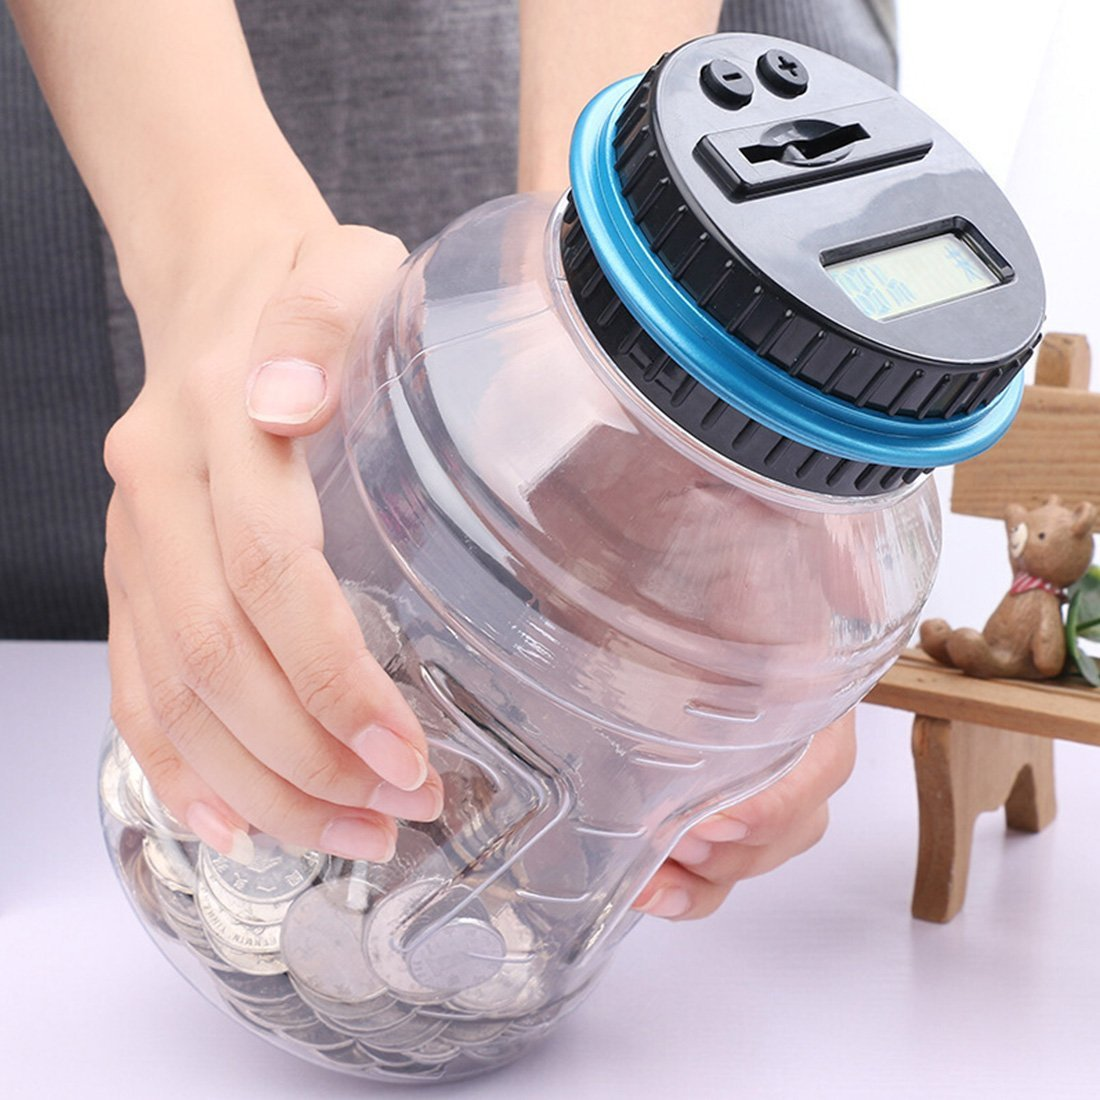 How To Save More Money With These Adult Piggy Banks - Her ...